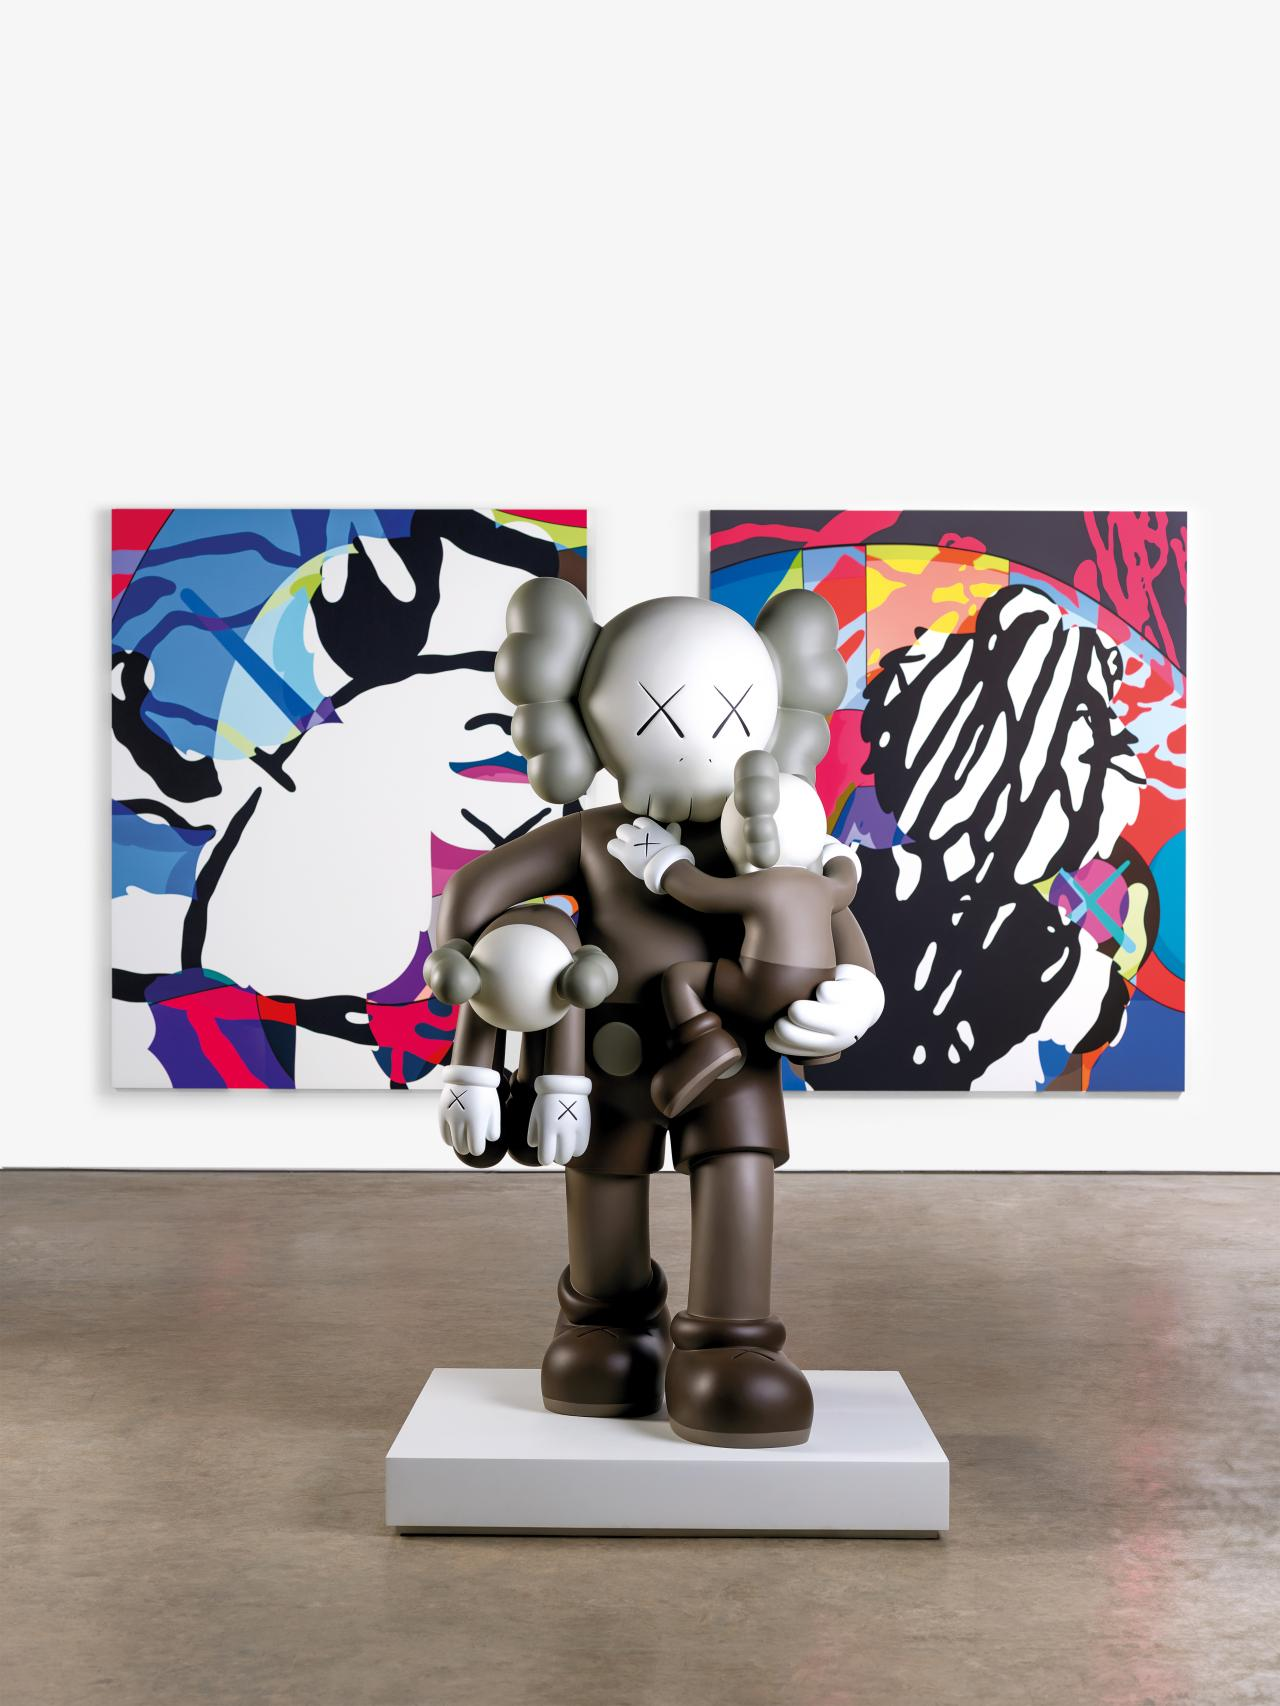 THE CUT | A GIANT KAWS EXHIBITION IS HITTING AUSTRALIA SOON